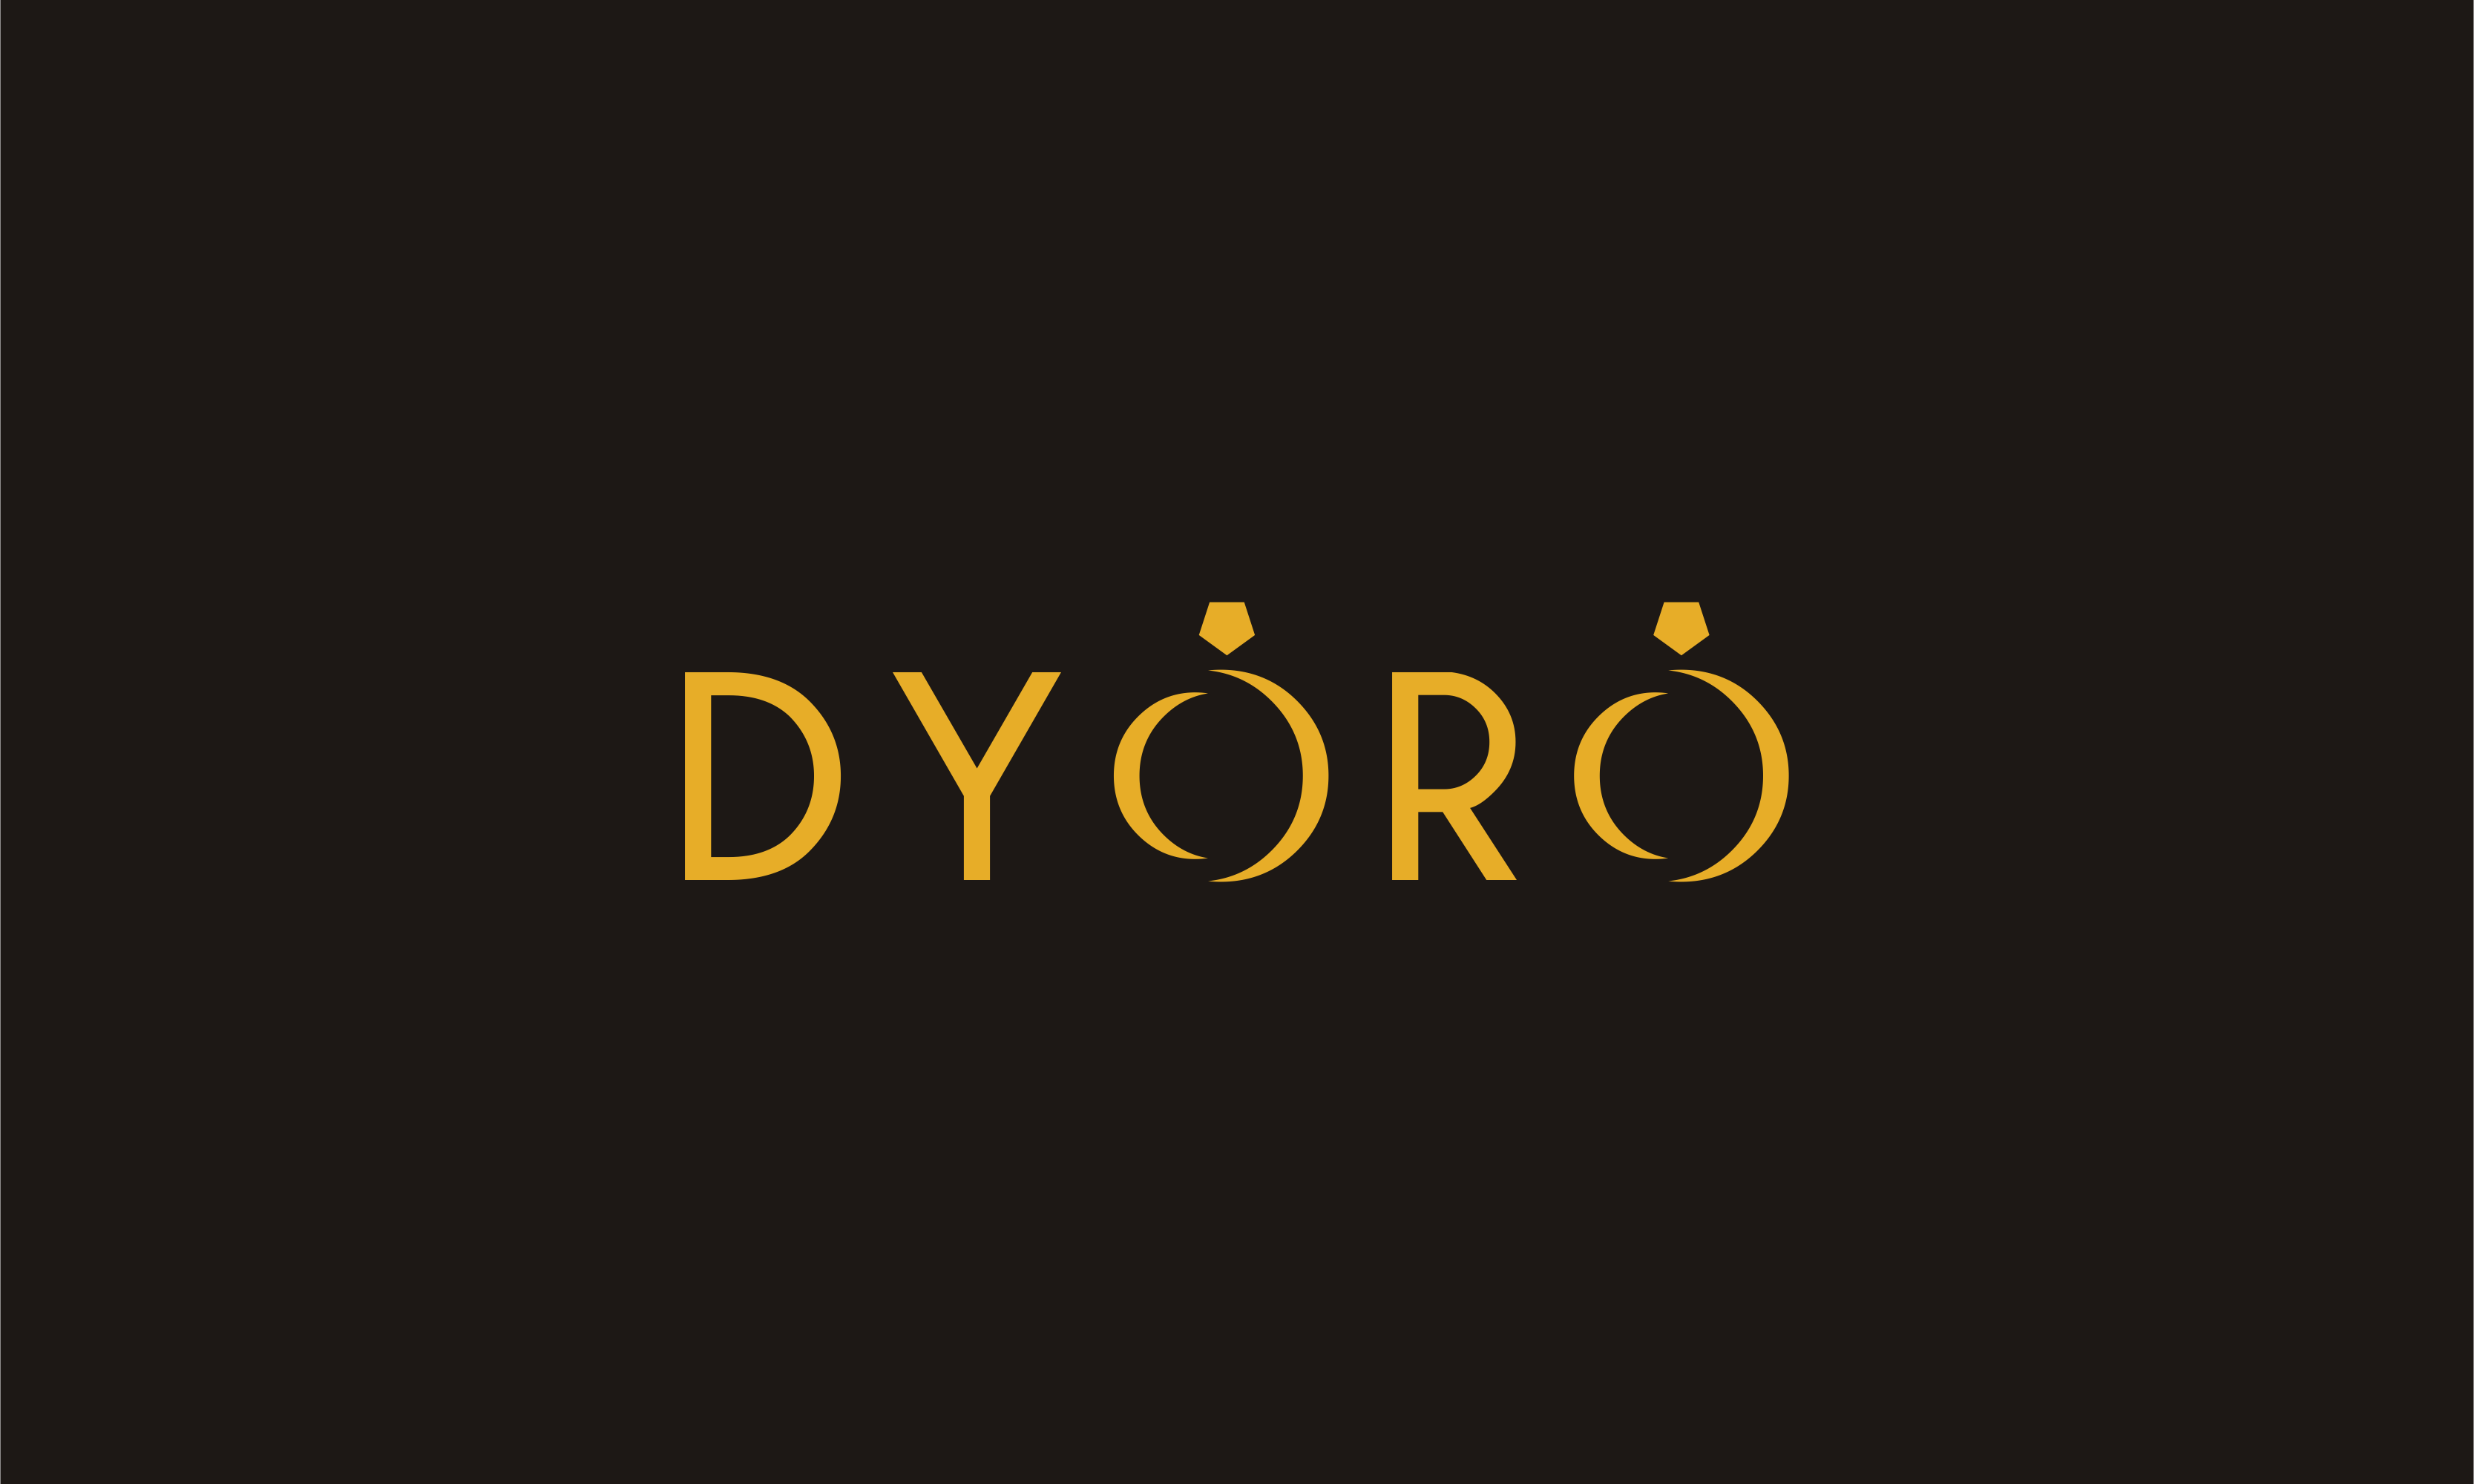 Dyoro - E-commerce product name for sale